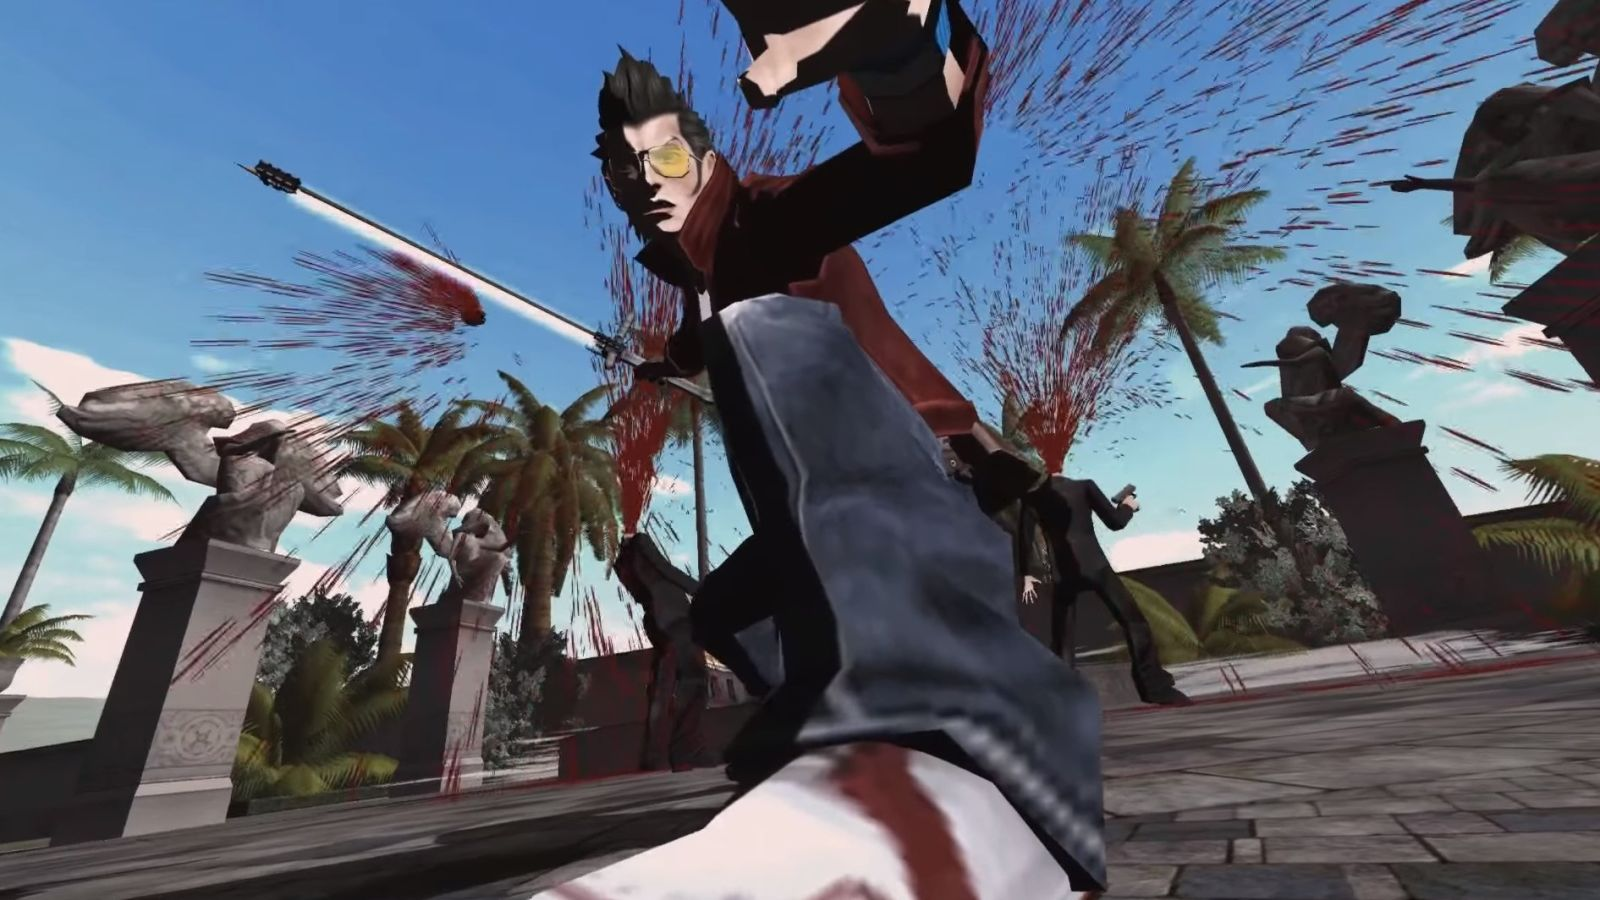 It sure seems like we're getting a new No More Heroes